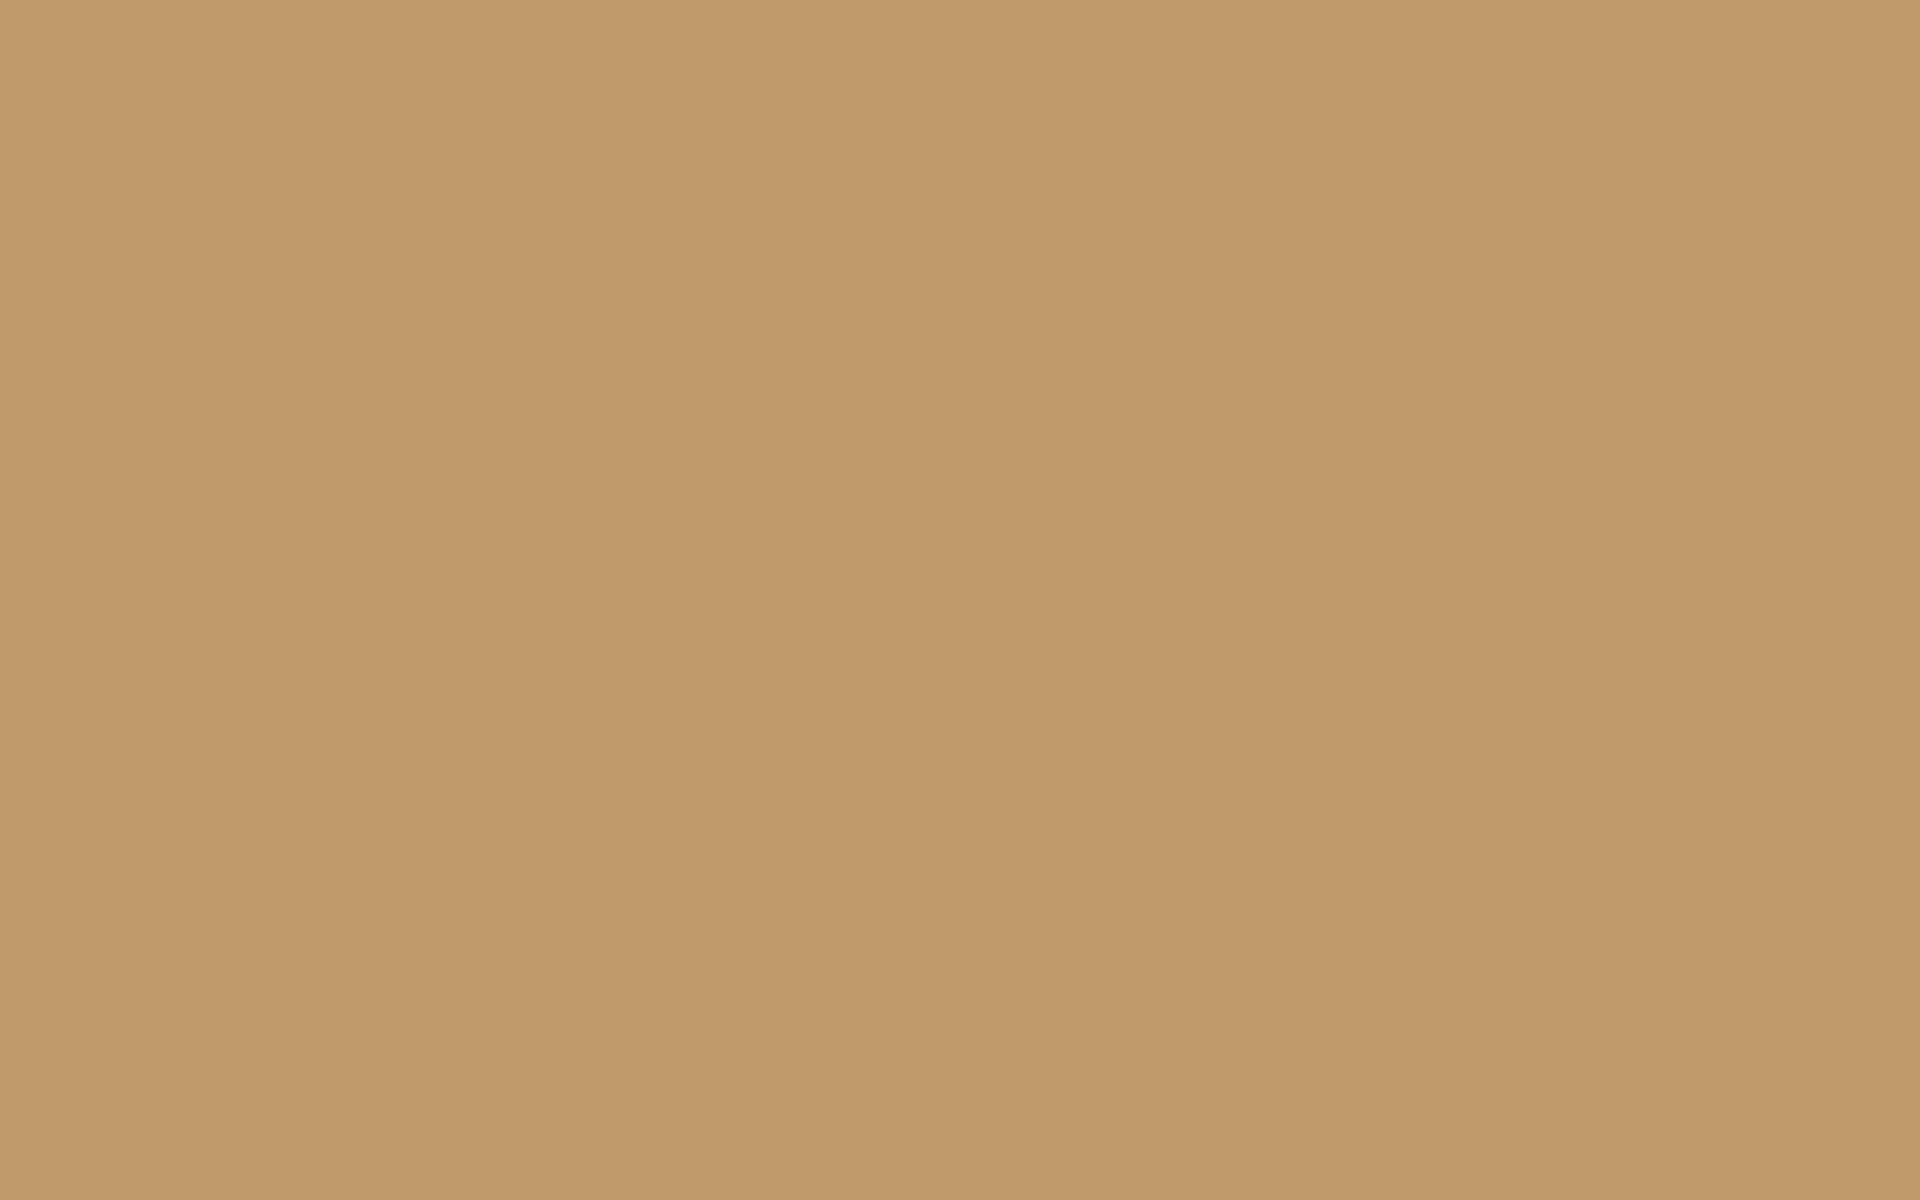 1920x1200 Wood Brown Solid Color Background